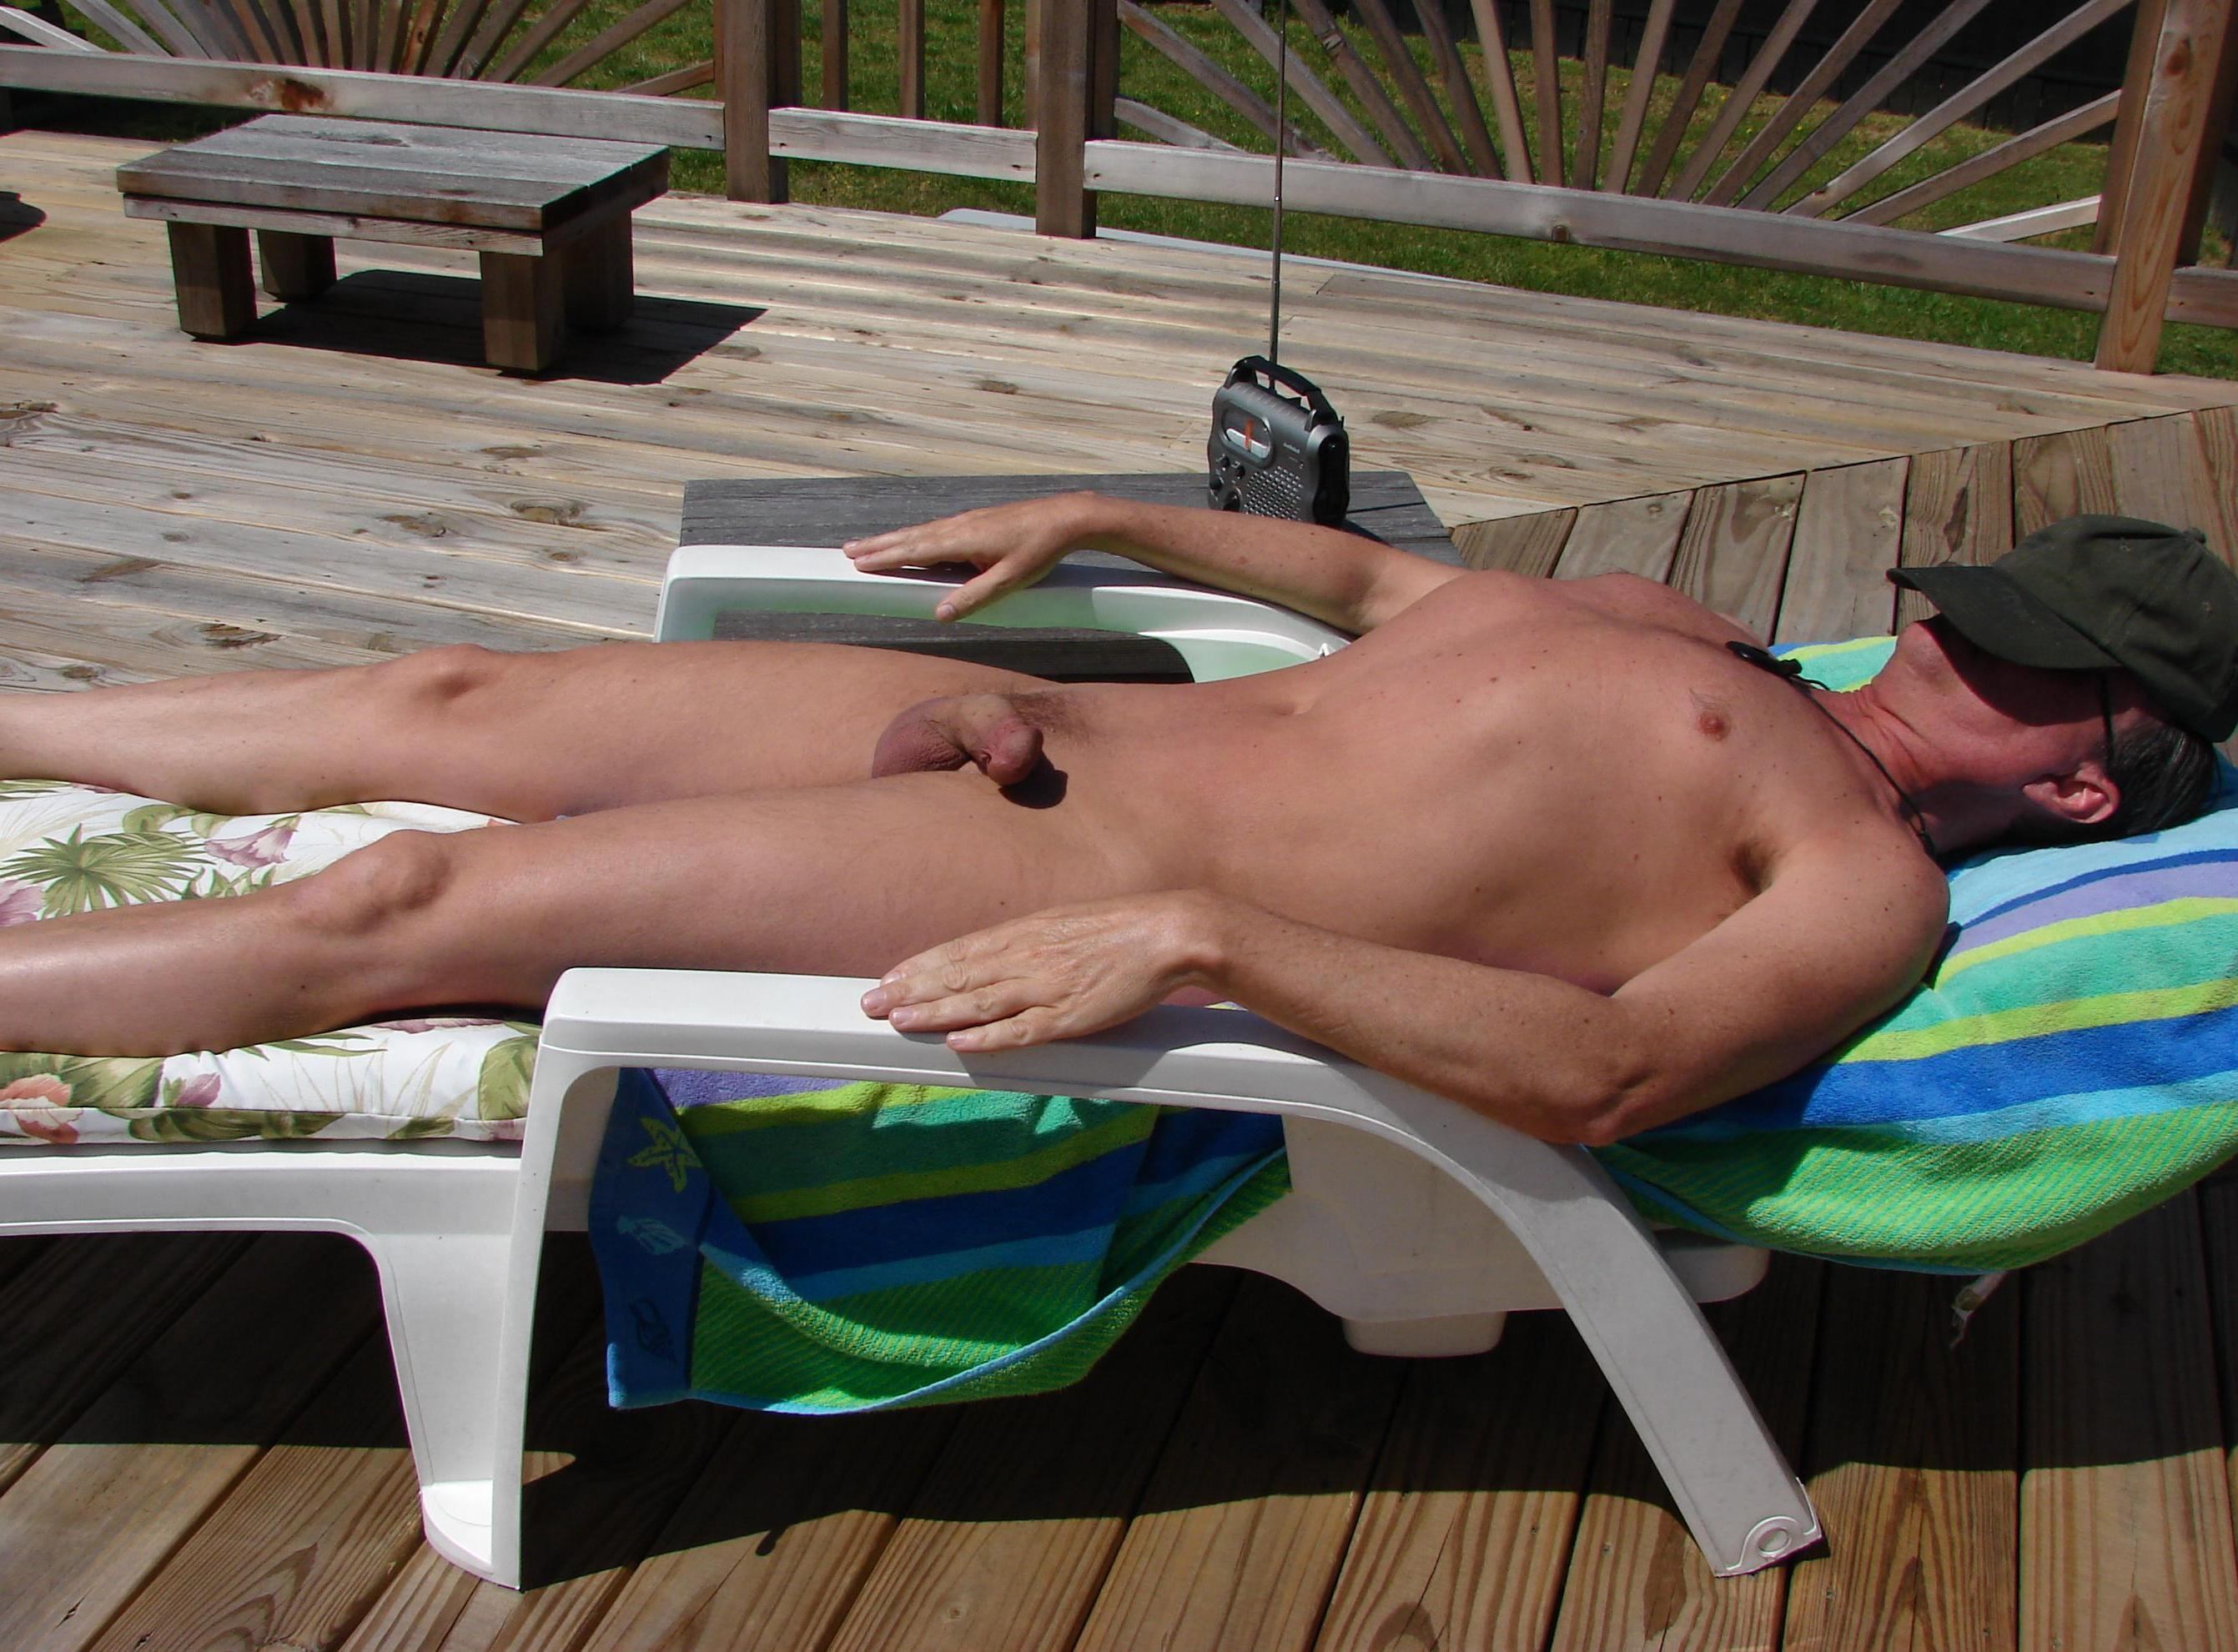 All Hot mature nude sunbathing consider